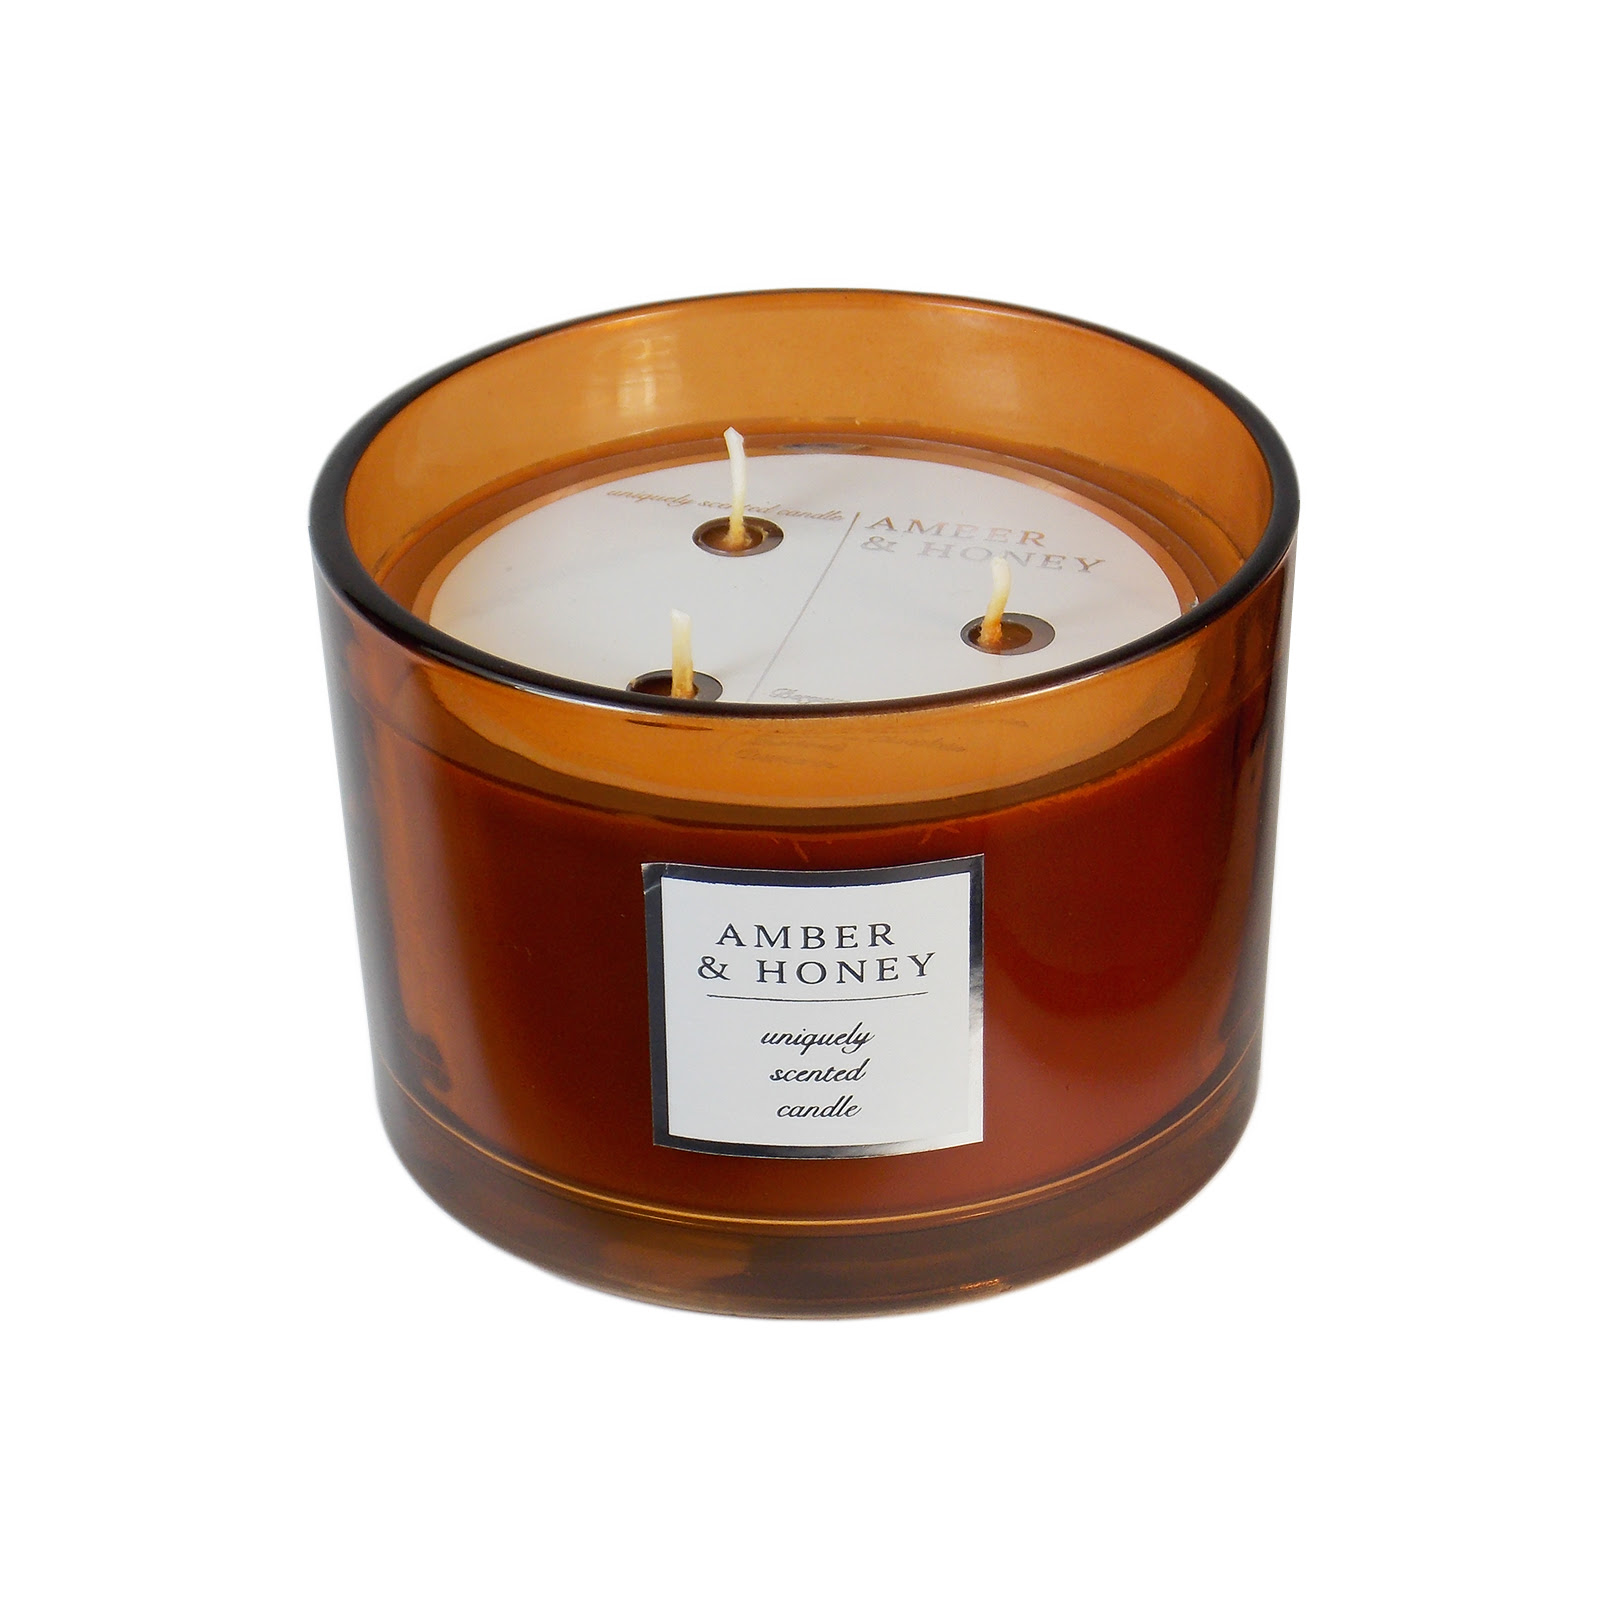 Amber and Honey 3-Wick Candle - 16 oz. - Food & Grocery ...